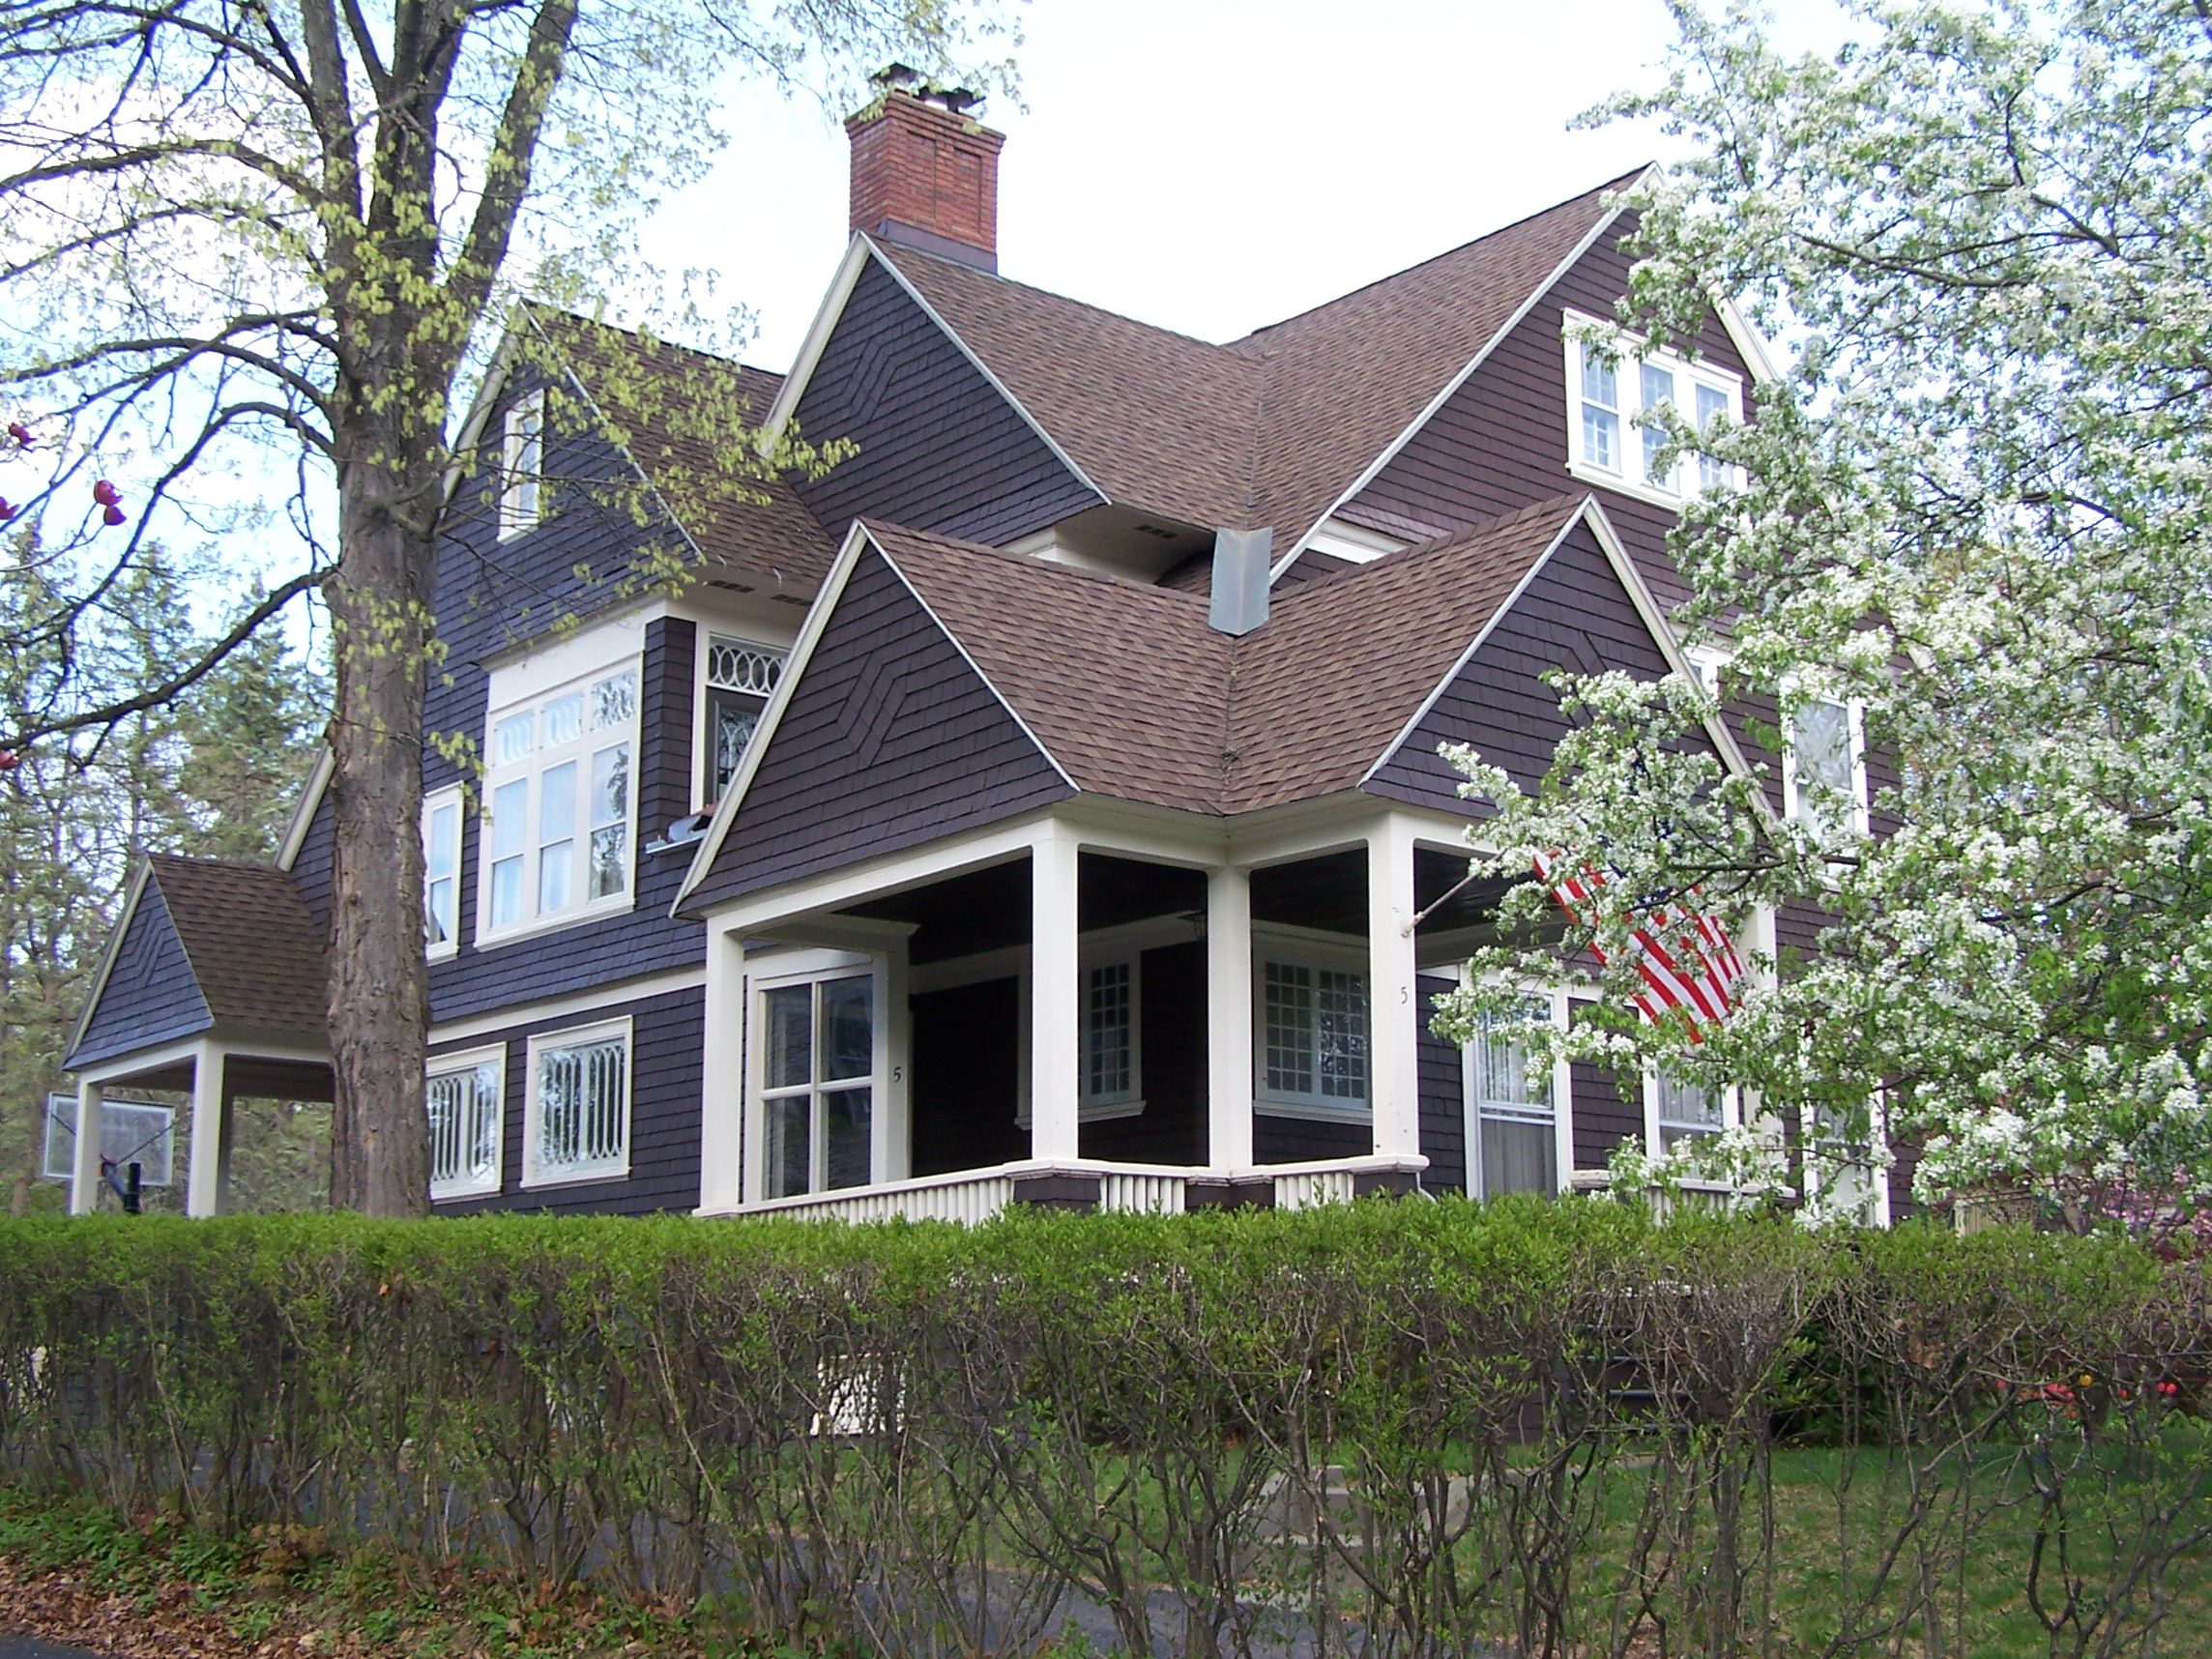 Overview of the Shingle Style, an American Original